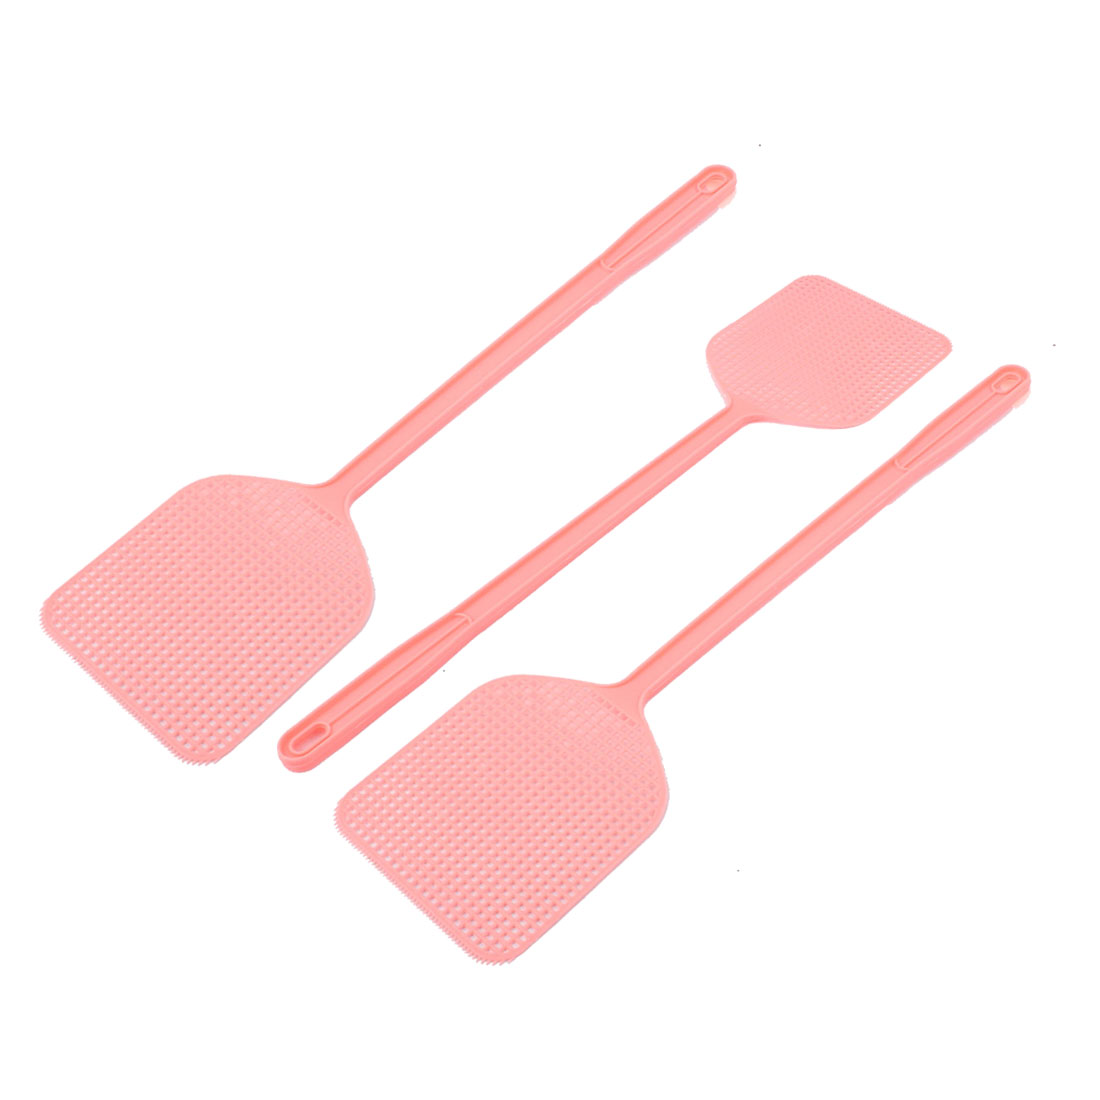 3pcs Pink Plastic Fly Swatter Bug Mosquito Insect Killer Catcher 45cm Length